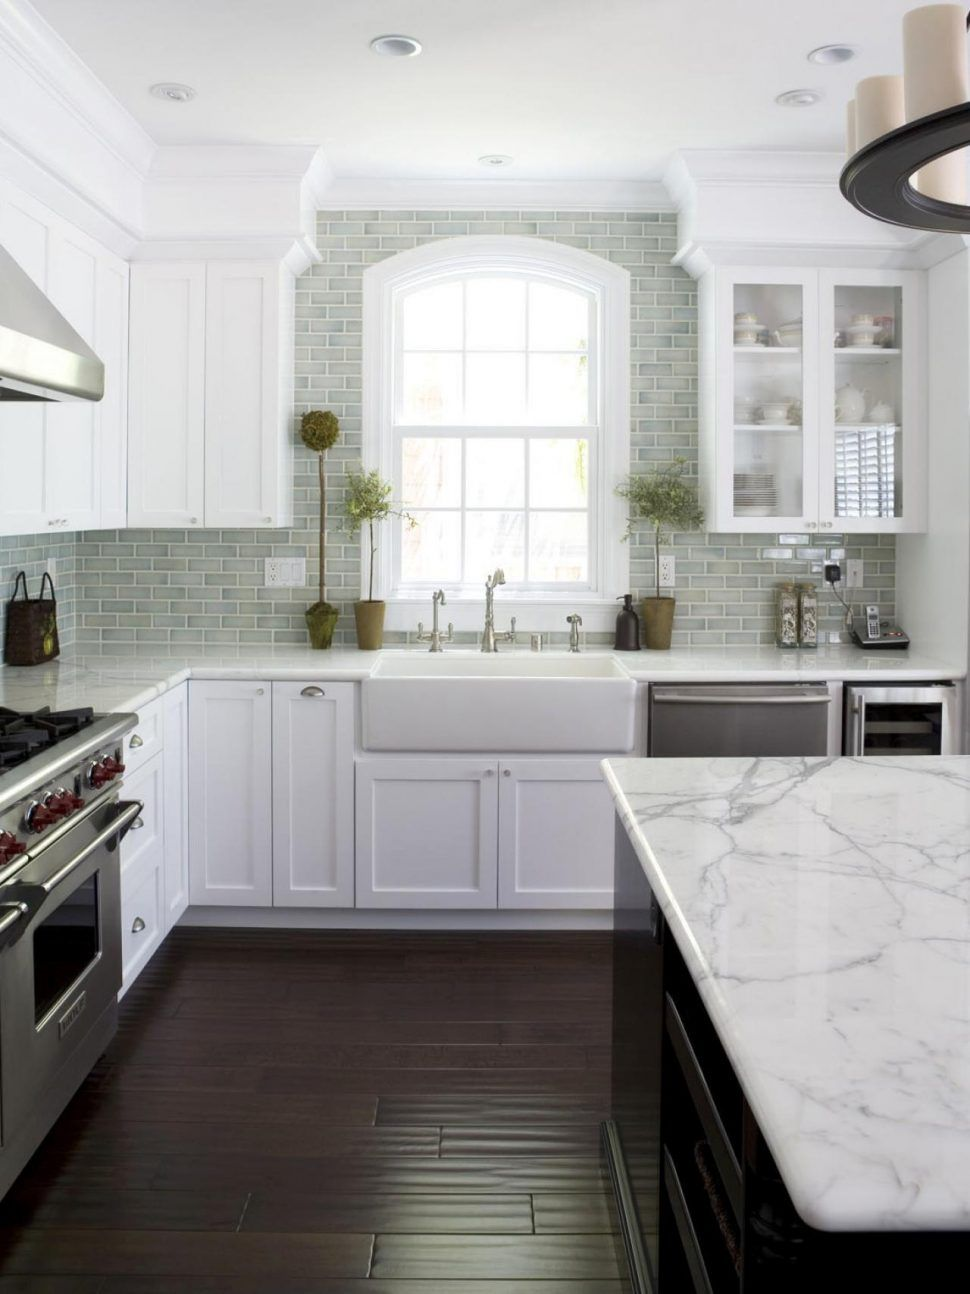 Kitchen Backsplash : Cabinets Grey Backsplash Tile Black Backsplash ...